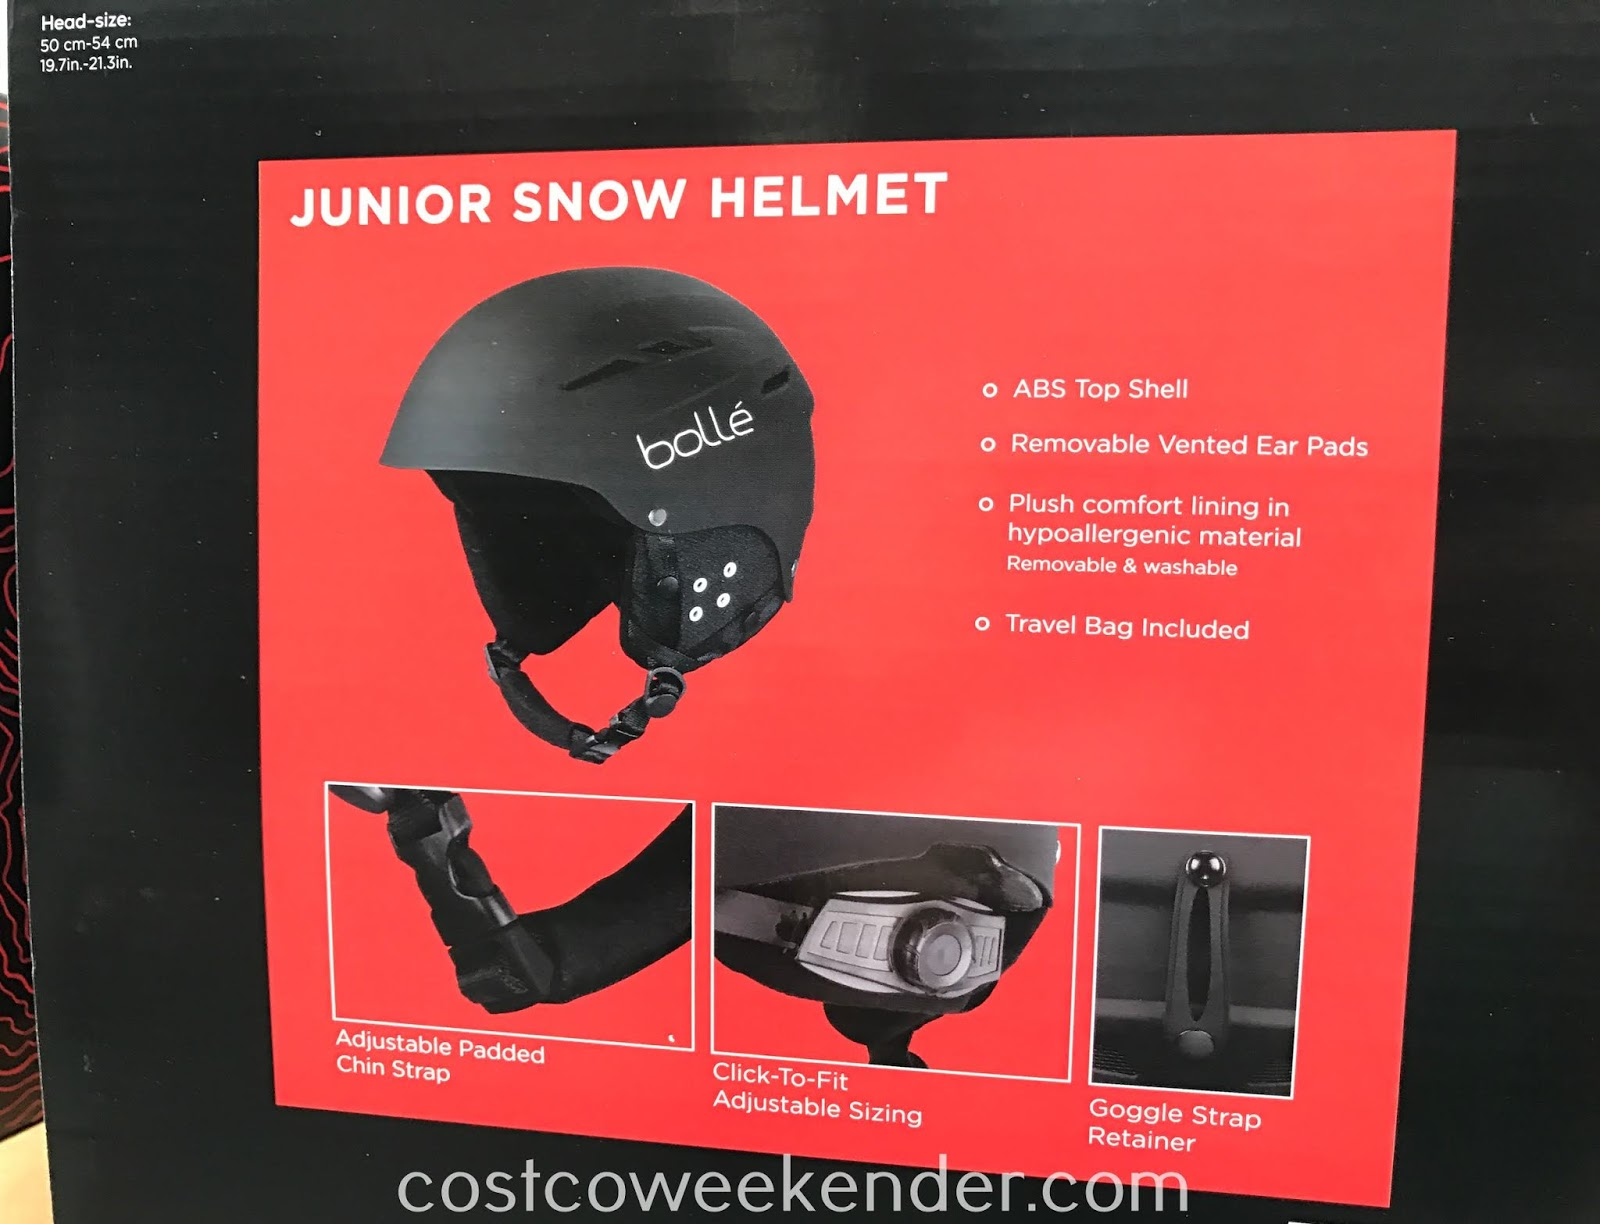 Costco 2000501 - Enjoy winter this season safely with the Bolle Junior Snow Helmet